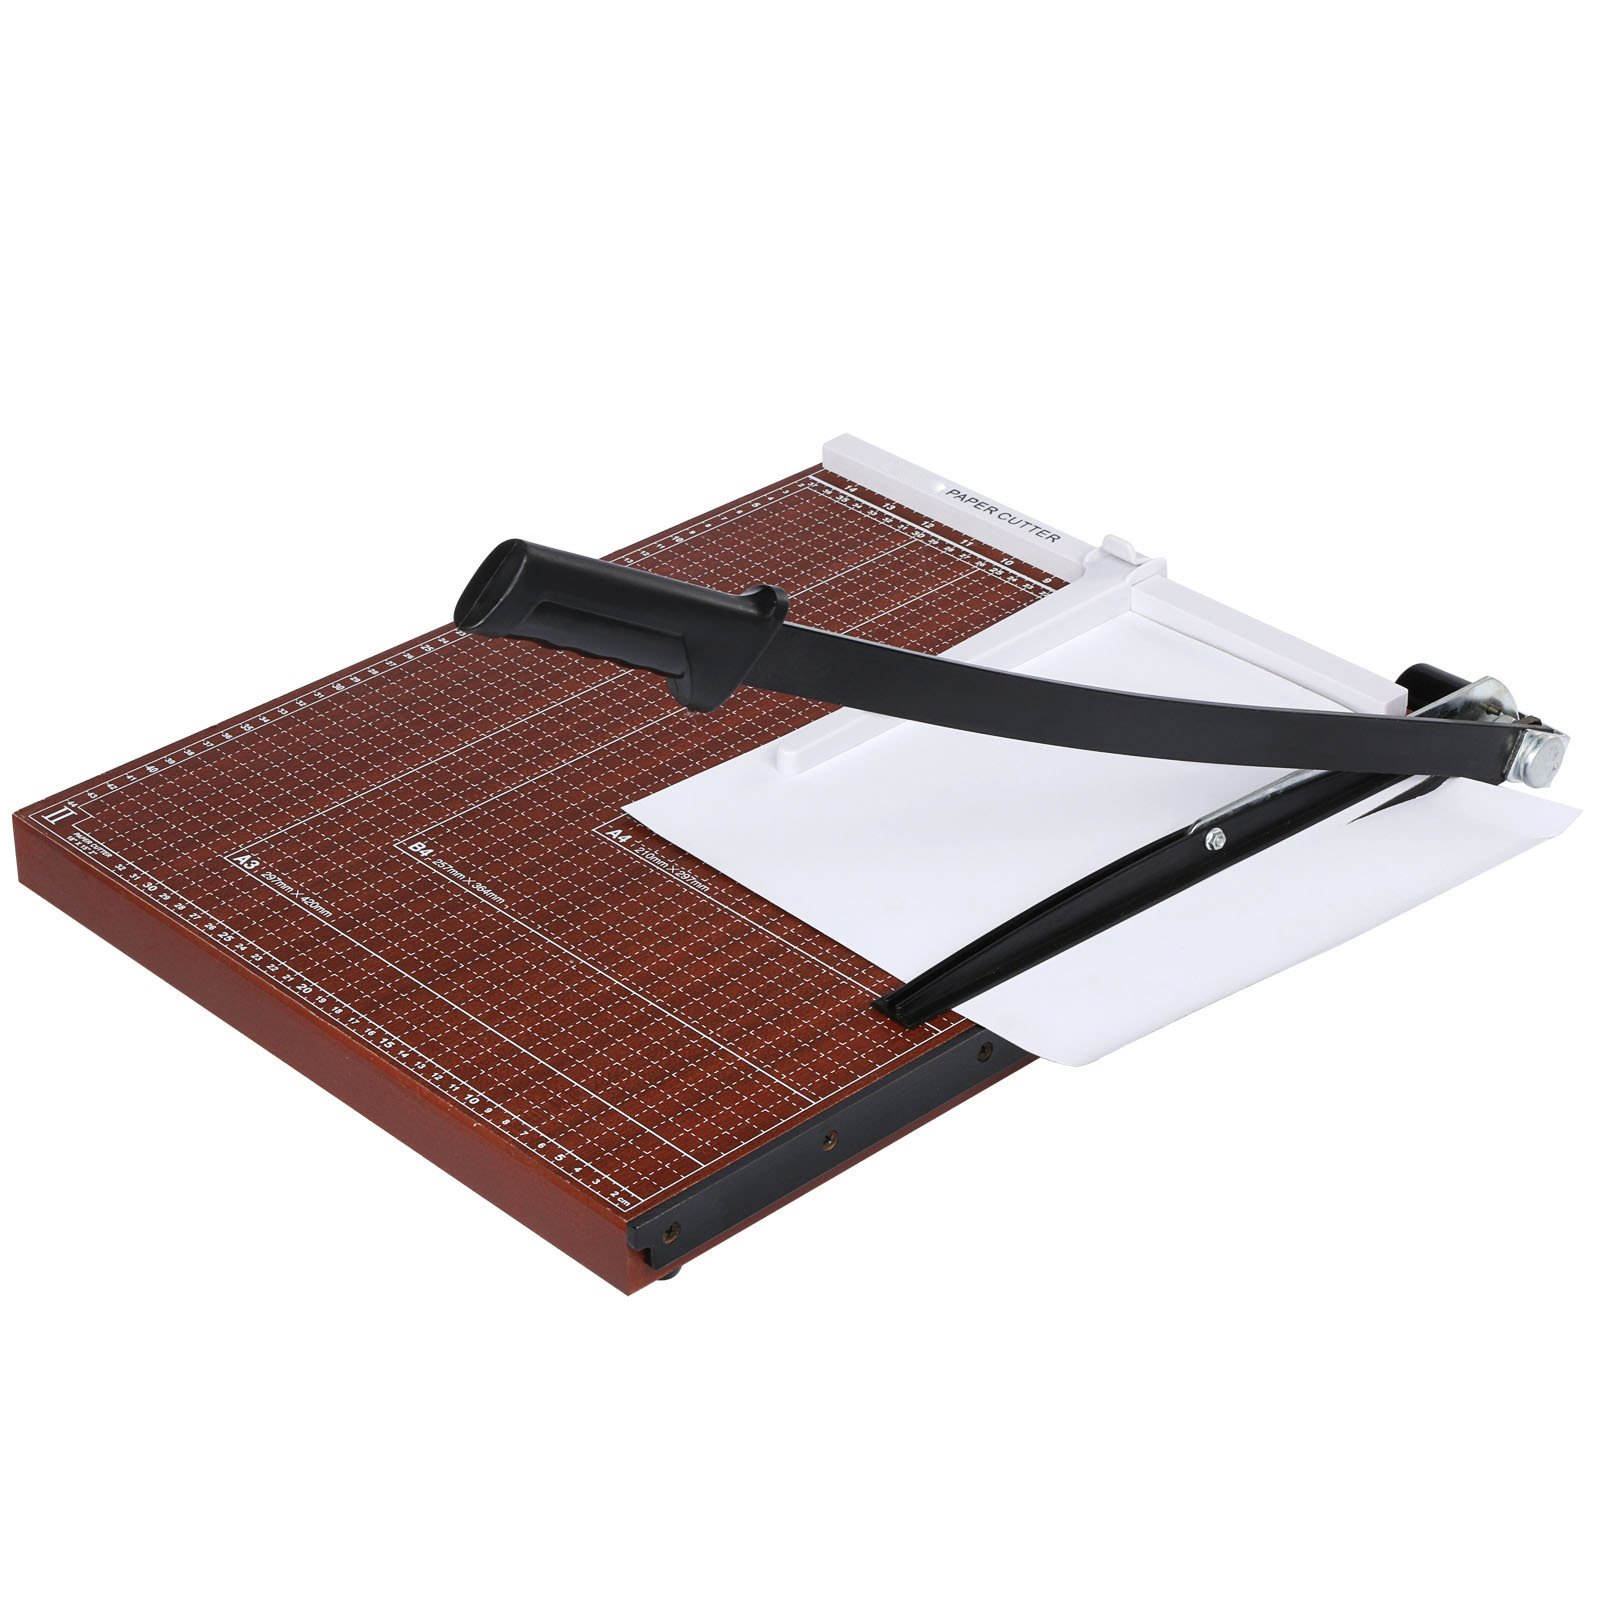 New Wooden Professional A2-B7 Paper Cutter Guillotine Style 18''x15'' Trimmer 12 Sheets Capacity Scrap Machine For Home Office Brown US Stock